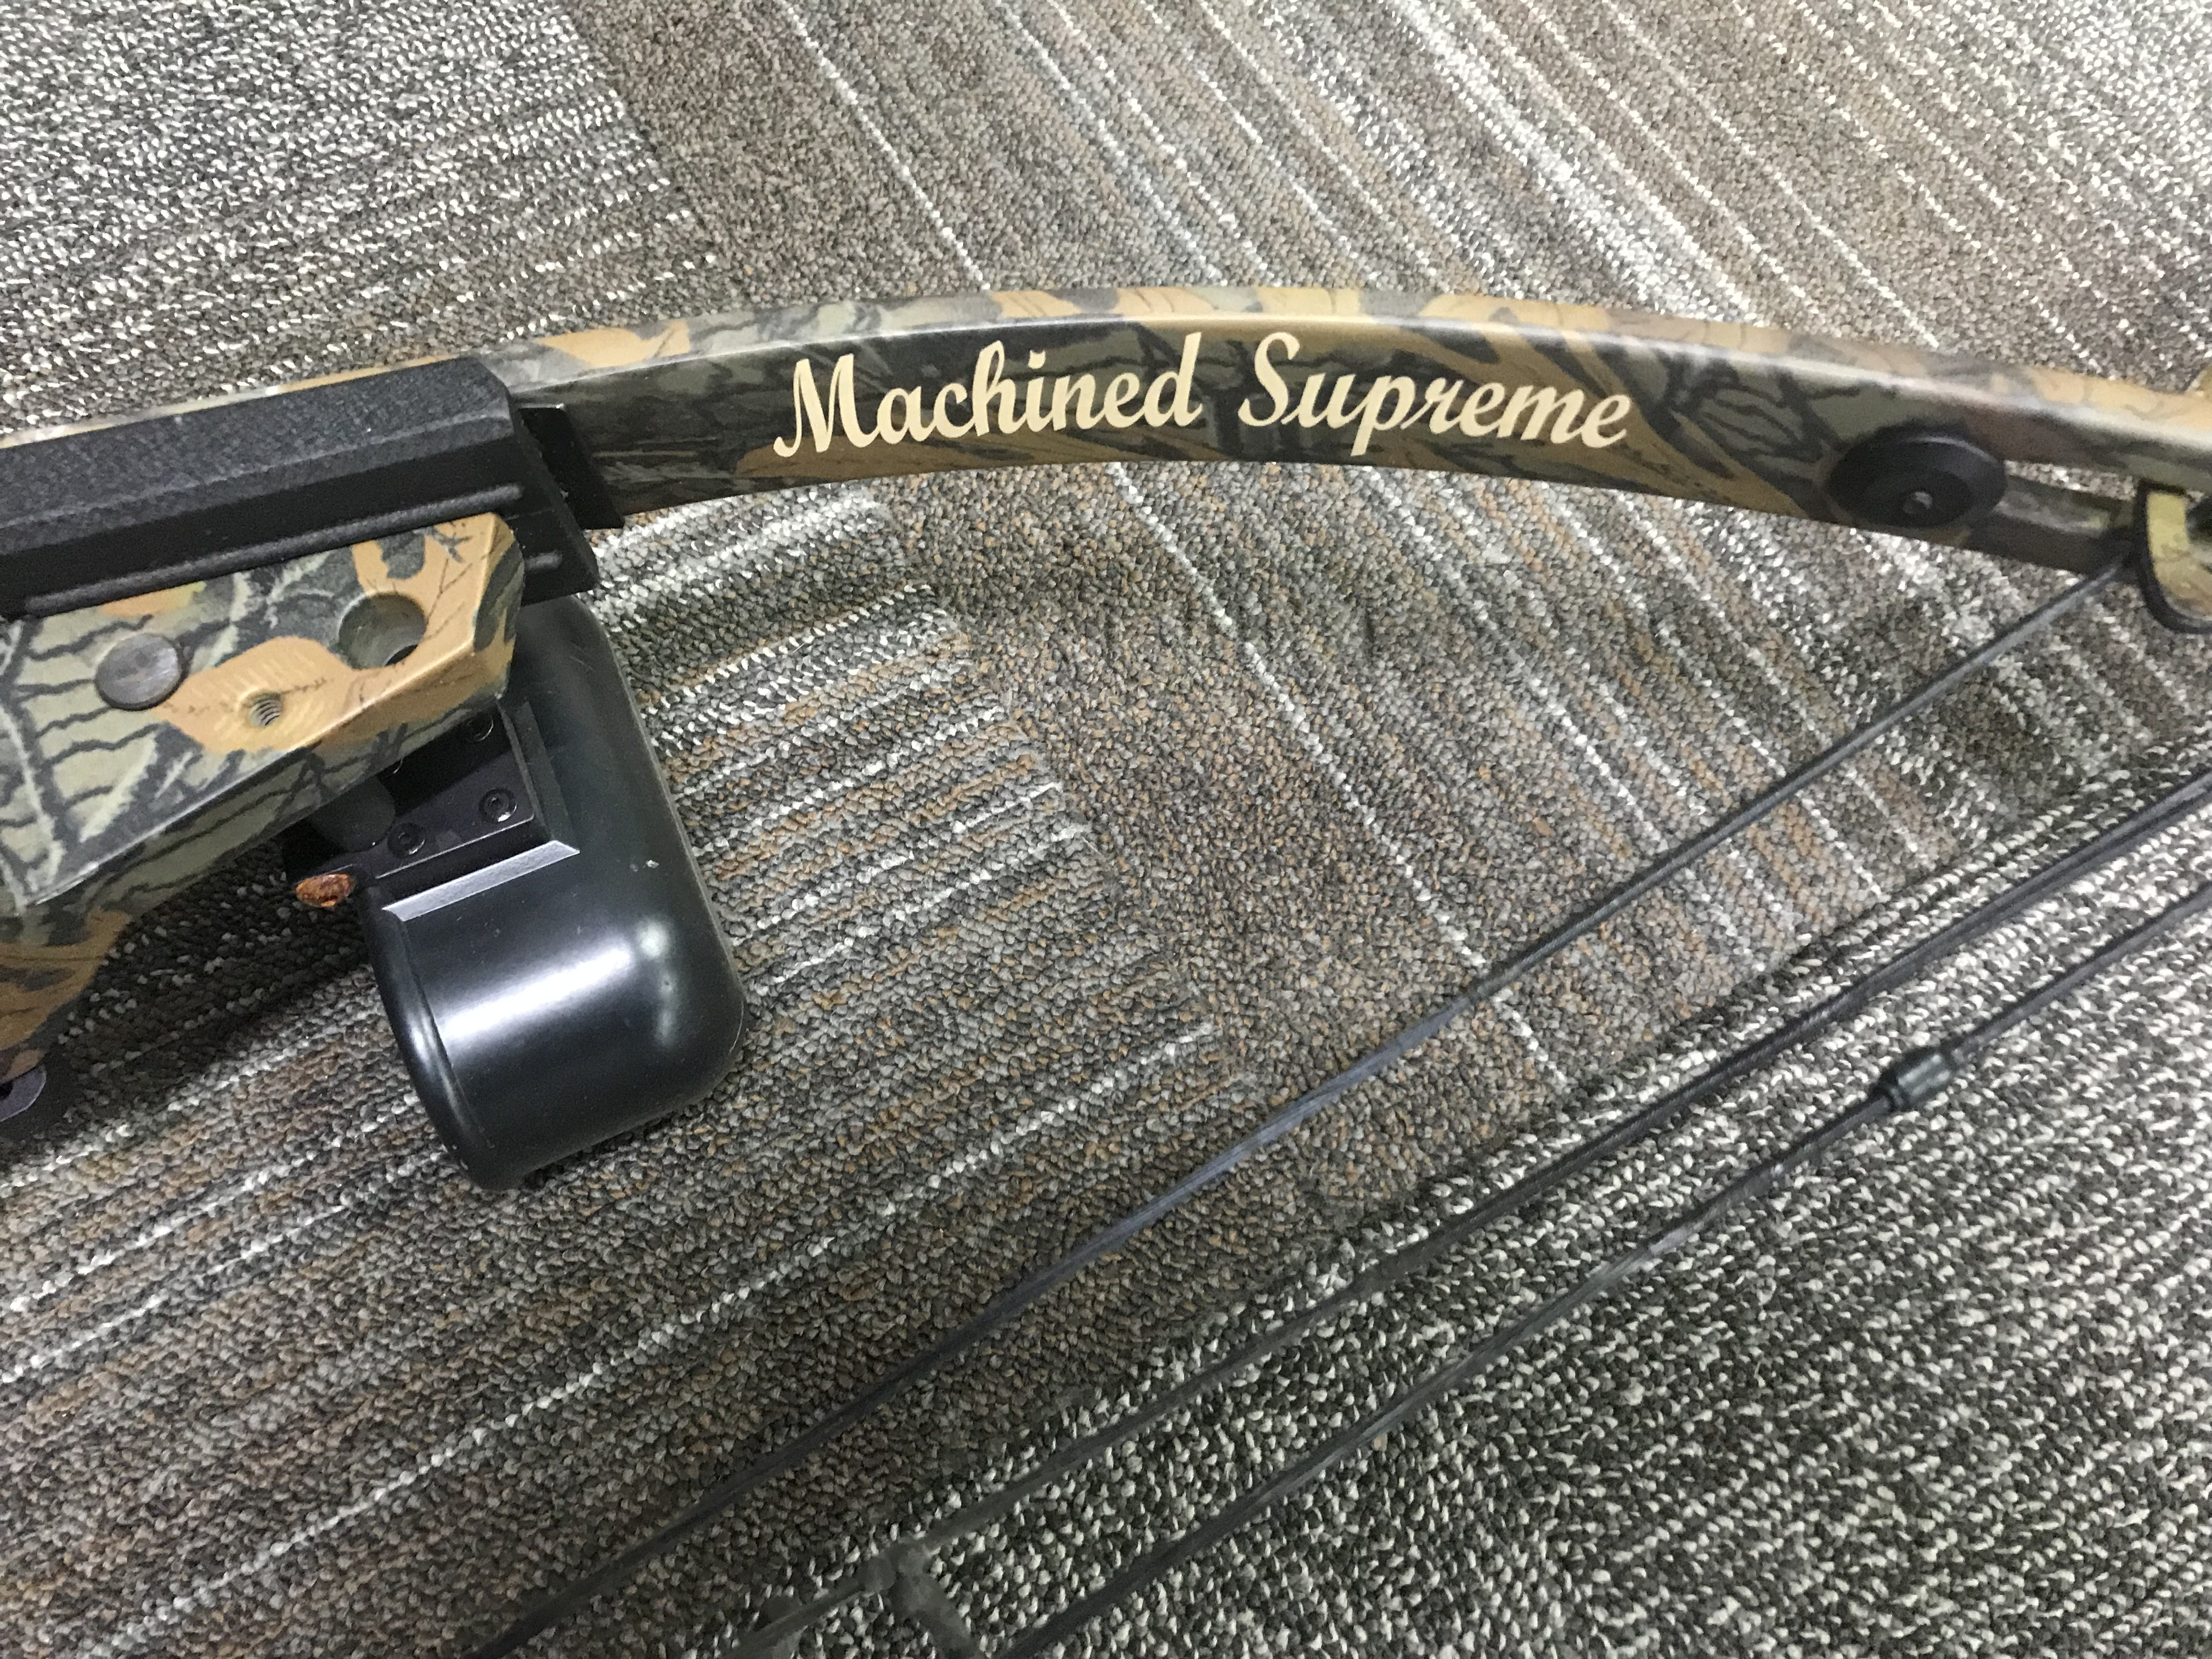 HIGH COUNTRY MACHINED SUPREME  29 DL, 70 DW, INCLUDES CASE